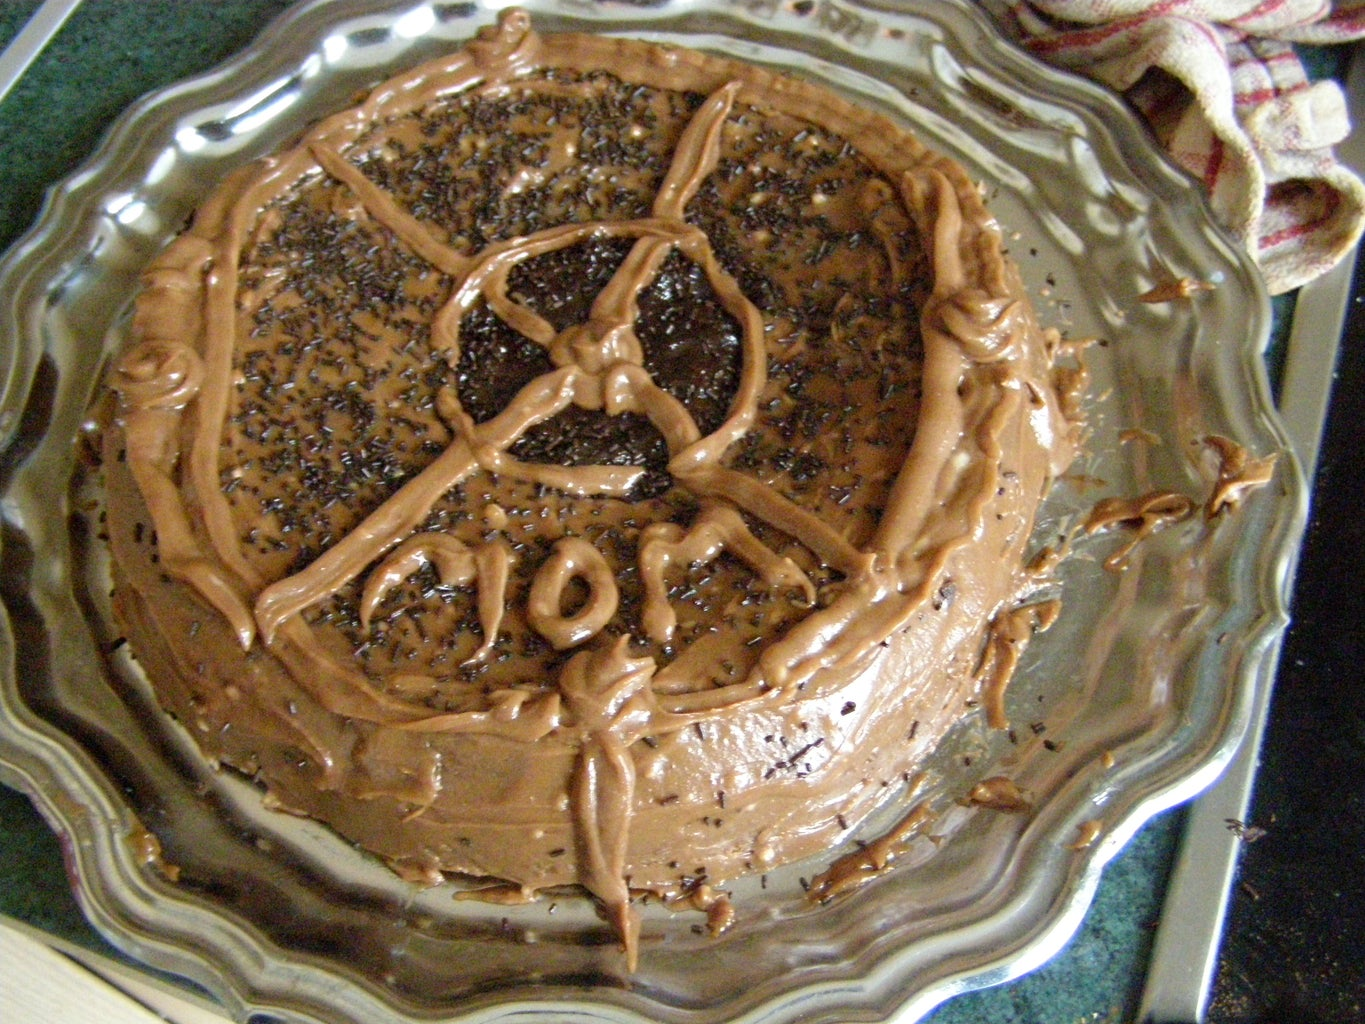 """The """"Way Too Chocolatey for Human Consumption"""" Cake"""